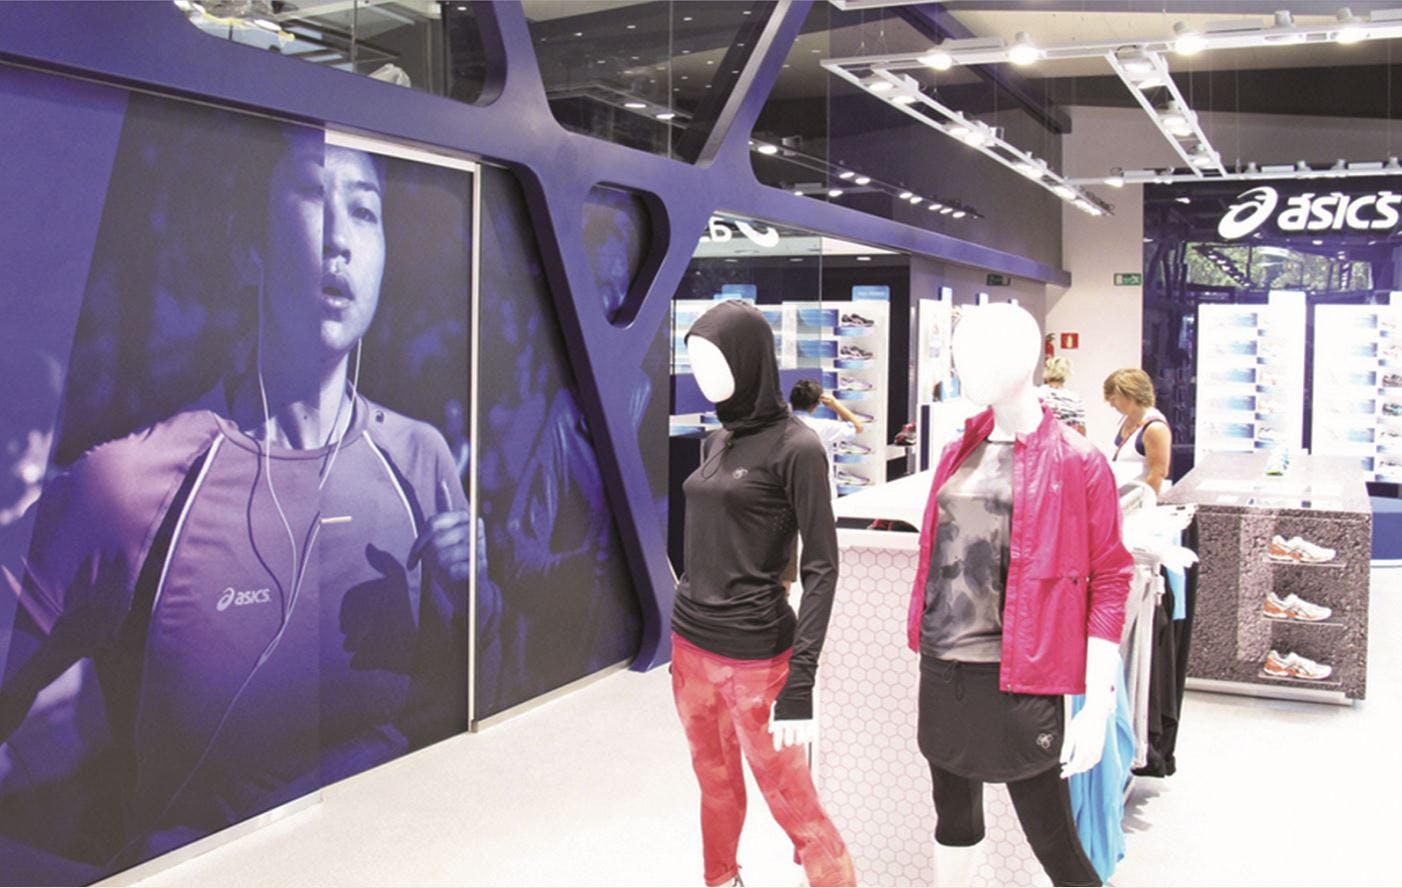 Asics will capture CRM data in stores to fuel its personalisation plans.